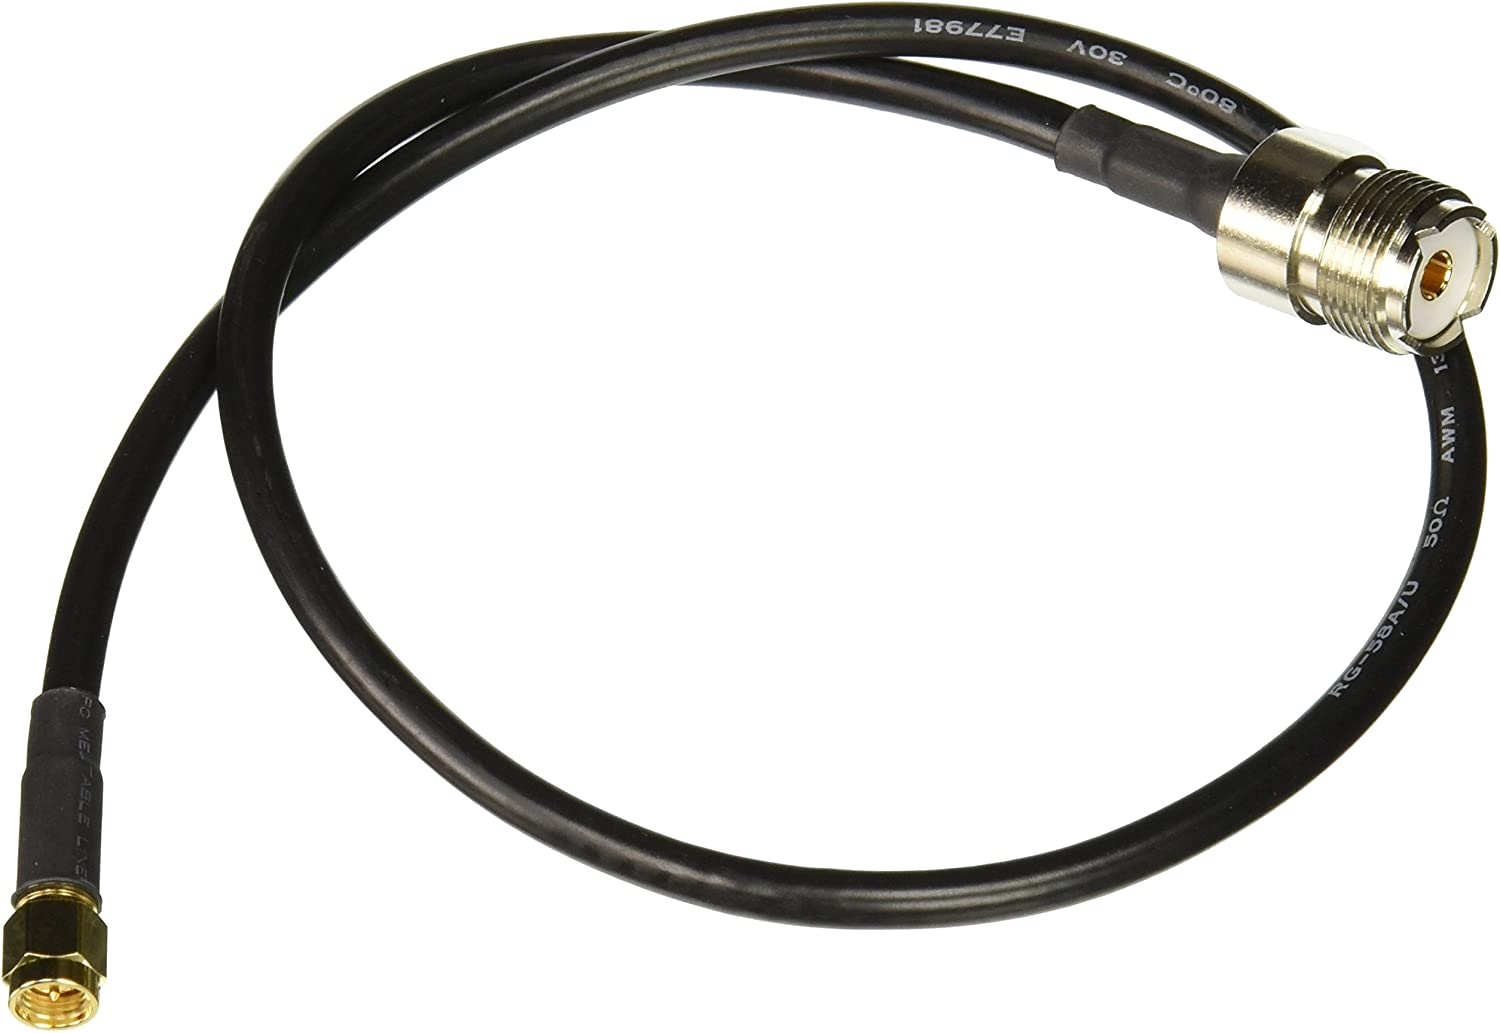 MPD Digital rg-58-sma-male-pl-259-10ft RF Coaxial Cable SMA Male to UHF PL259 Male RG58